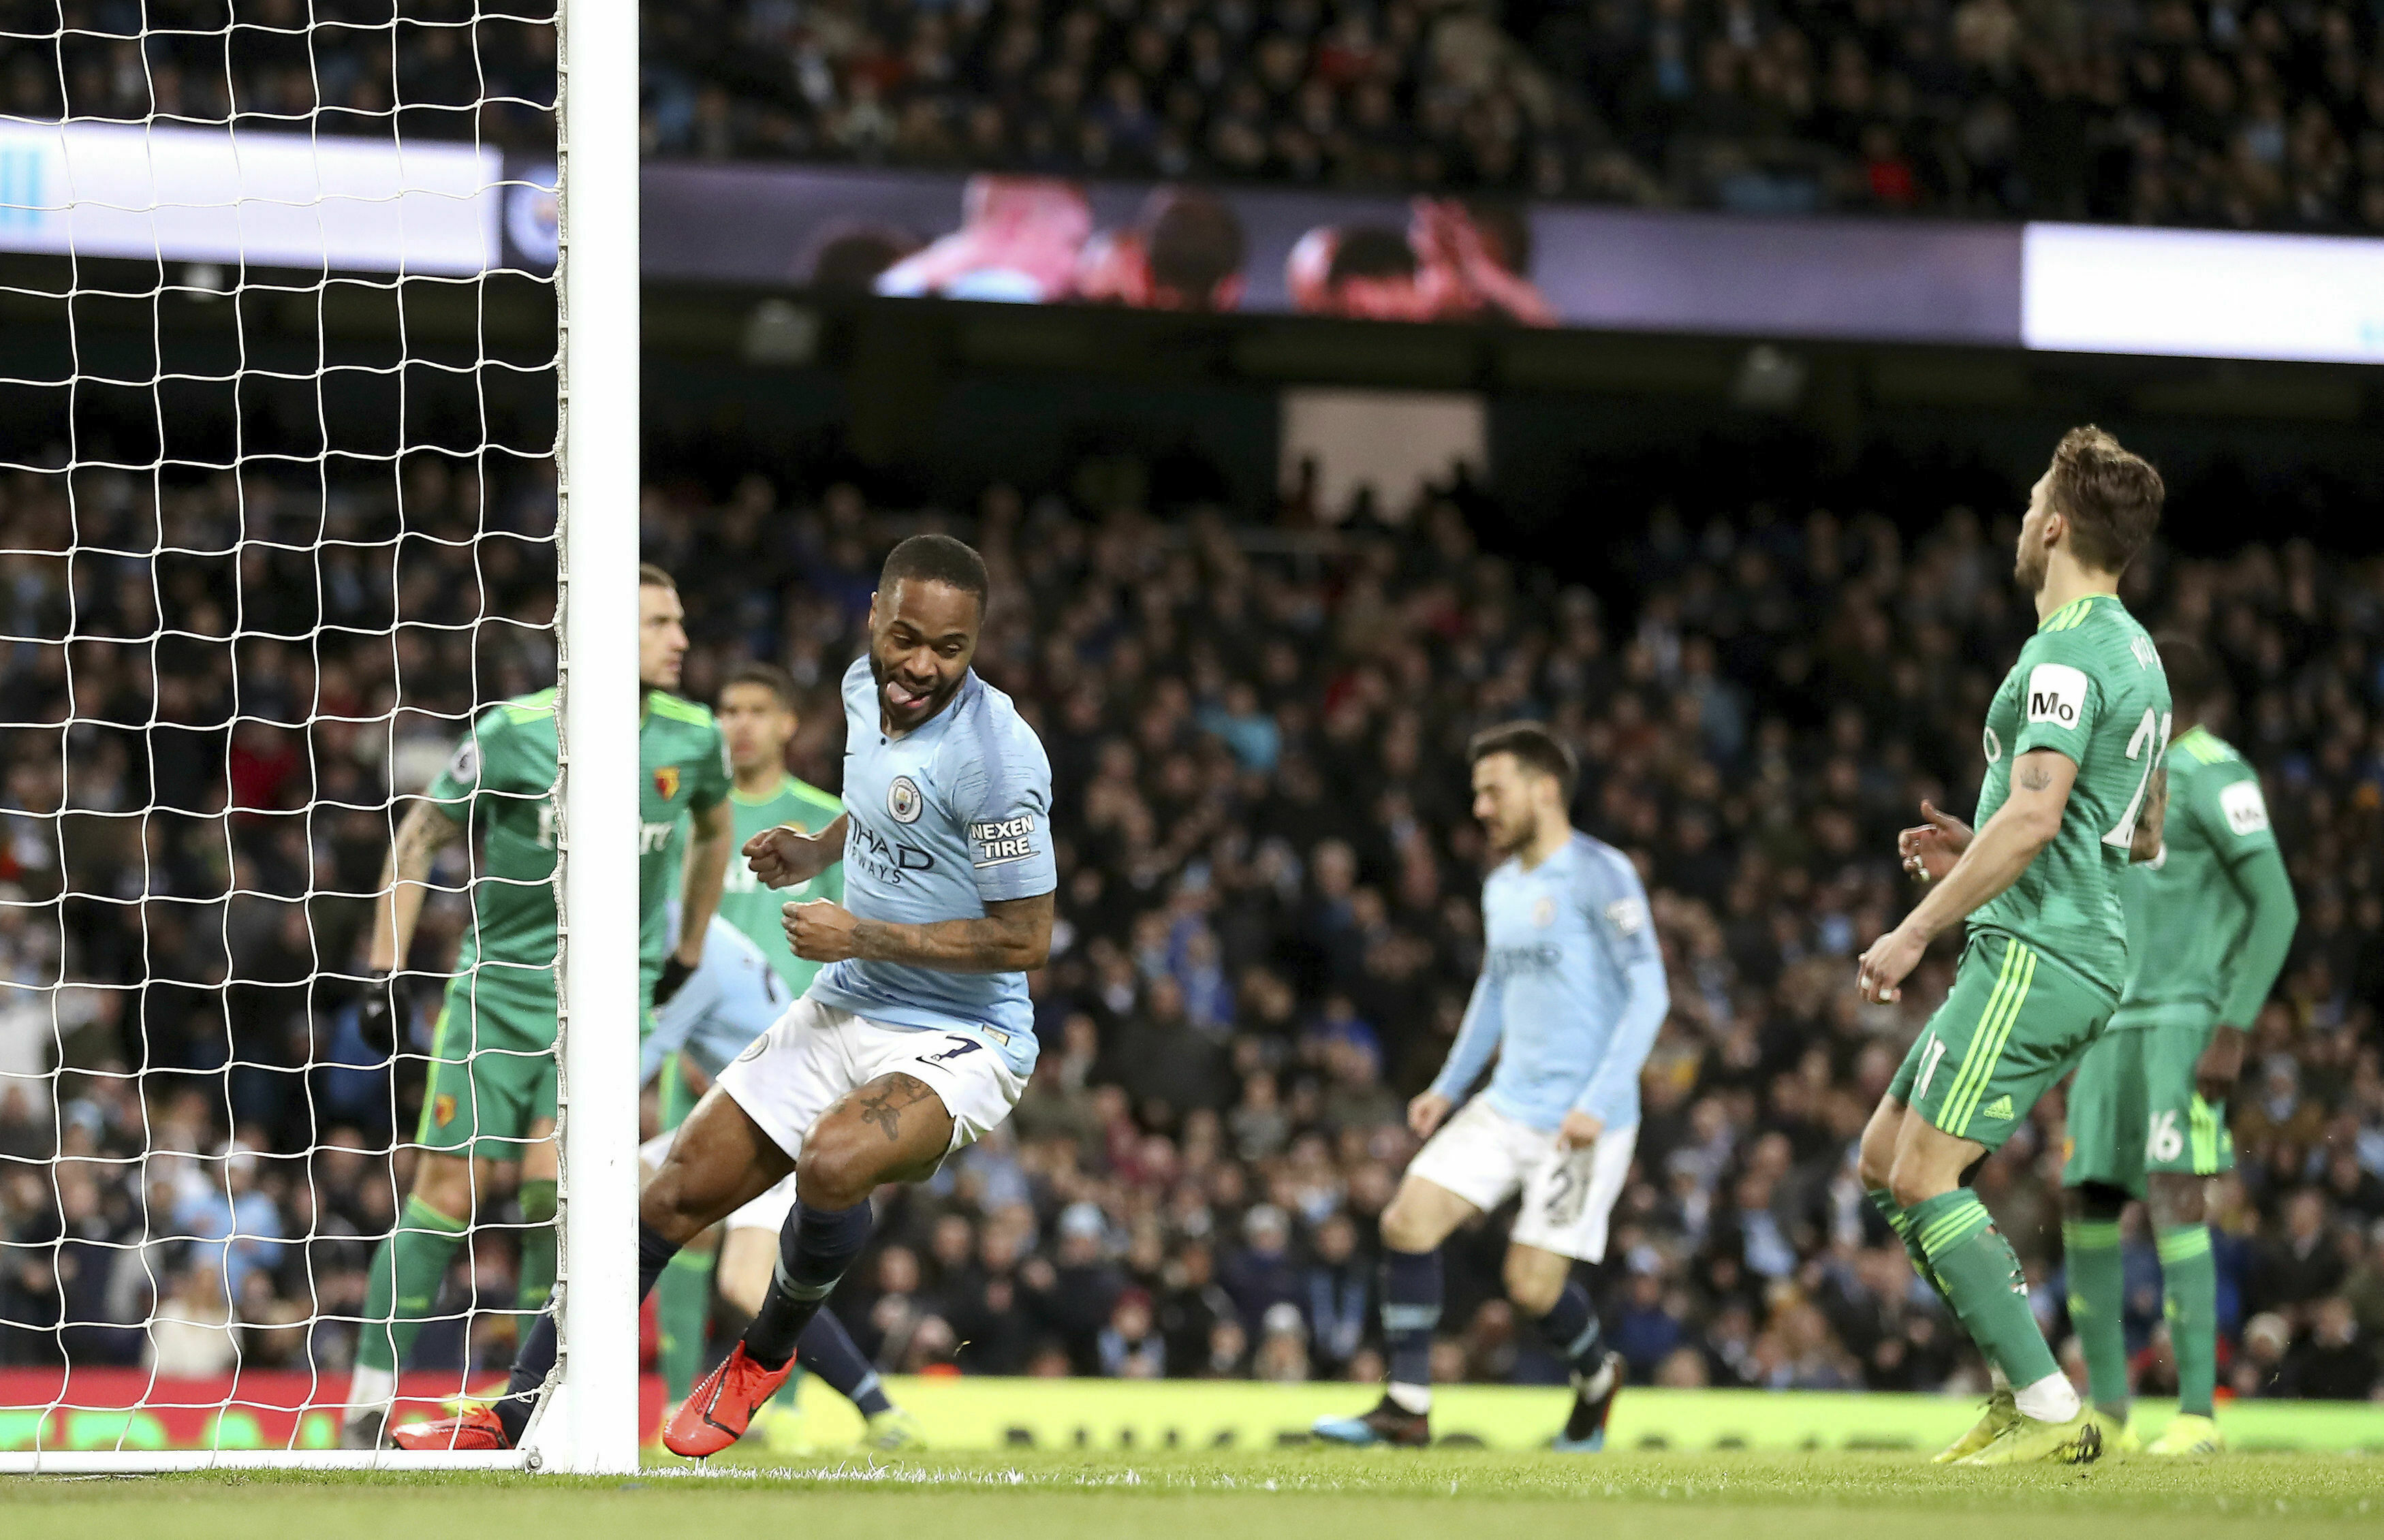 Sterling's hat trick gives Man City 3-1 win over Watford